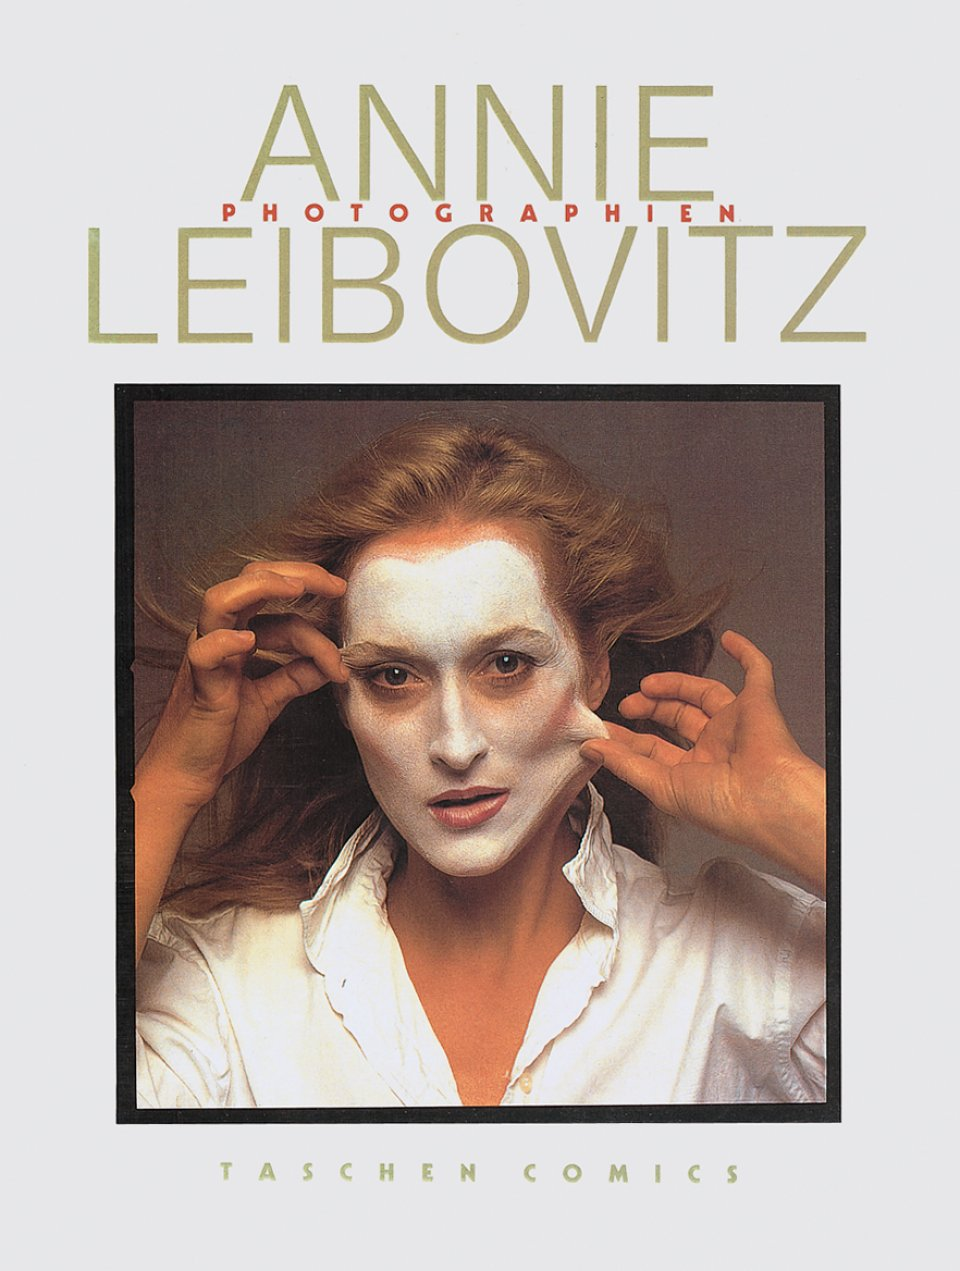 A book of photographs by Annie Leibovitz is printed under TASCHEN's name.